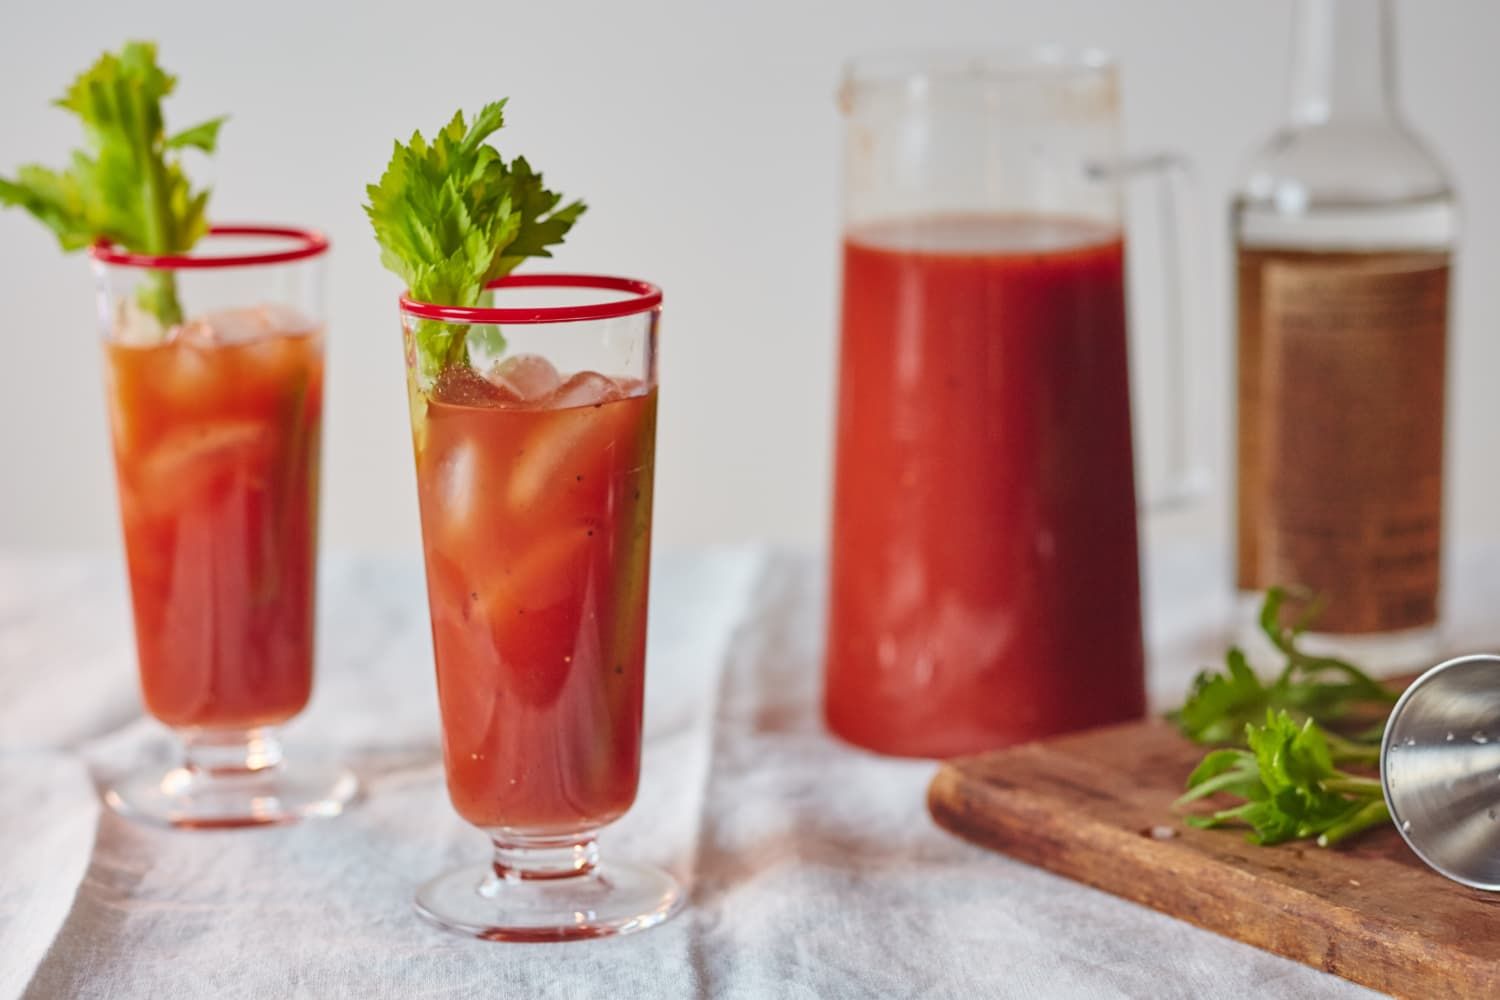 I Tried 11 Bloody Mary Mixes and Now These Are the Only Two I'll Buy